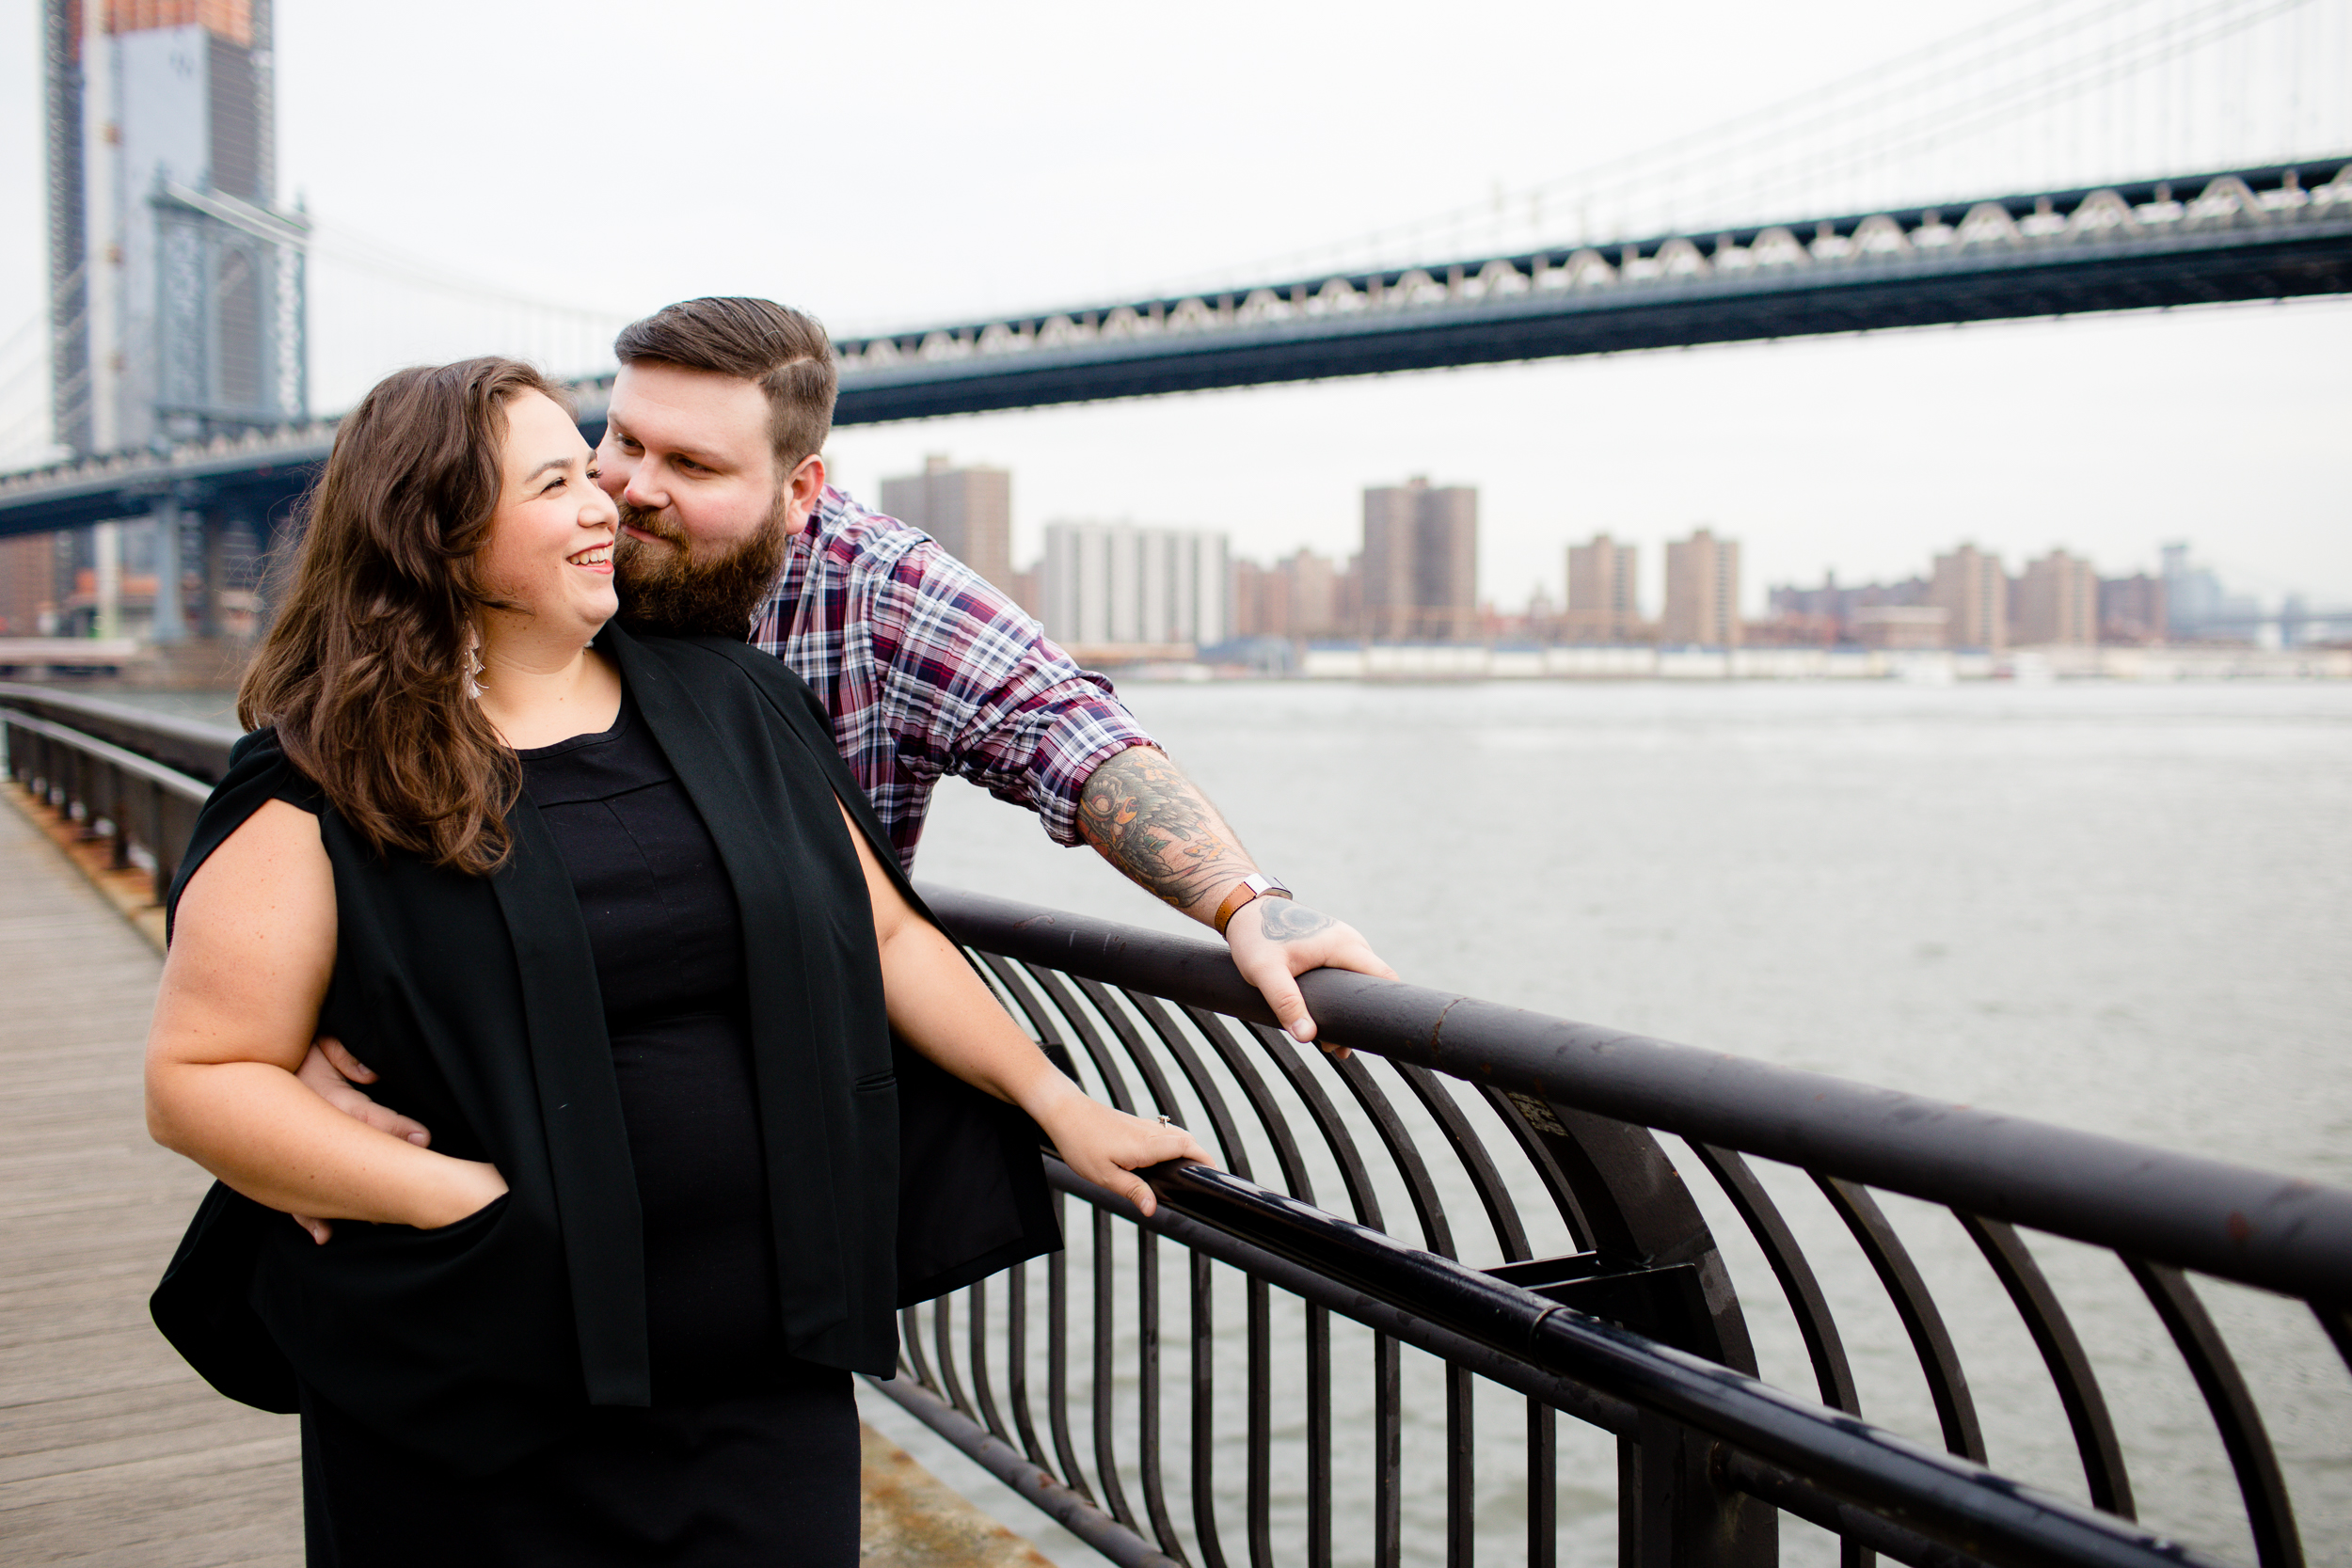 engagement-photography-brooklyn-photographer-8.jpg